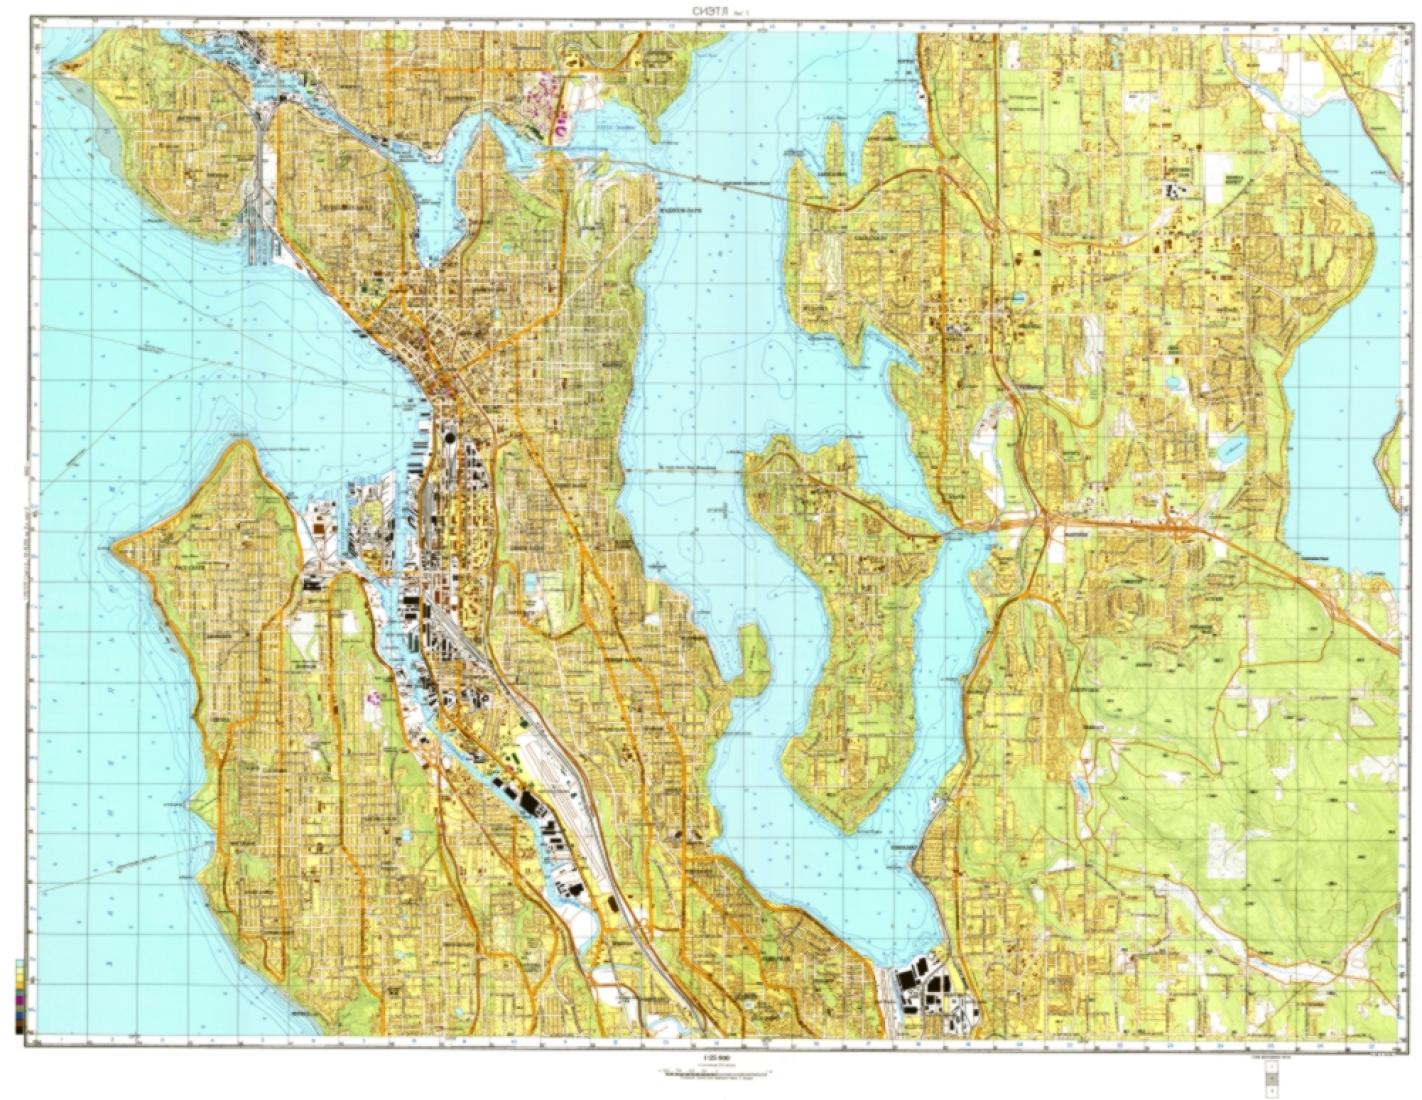 Seattle Washington Cold War Map Sheet 2 Of 3 By Ussr Ministry Of